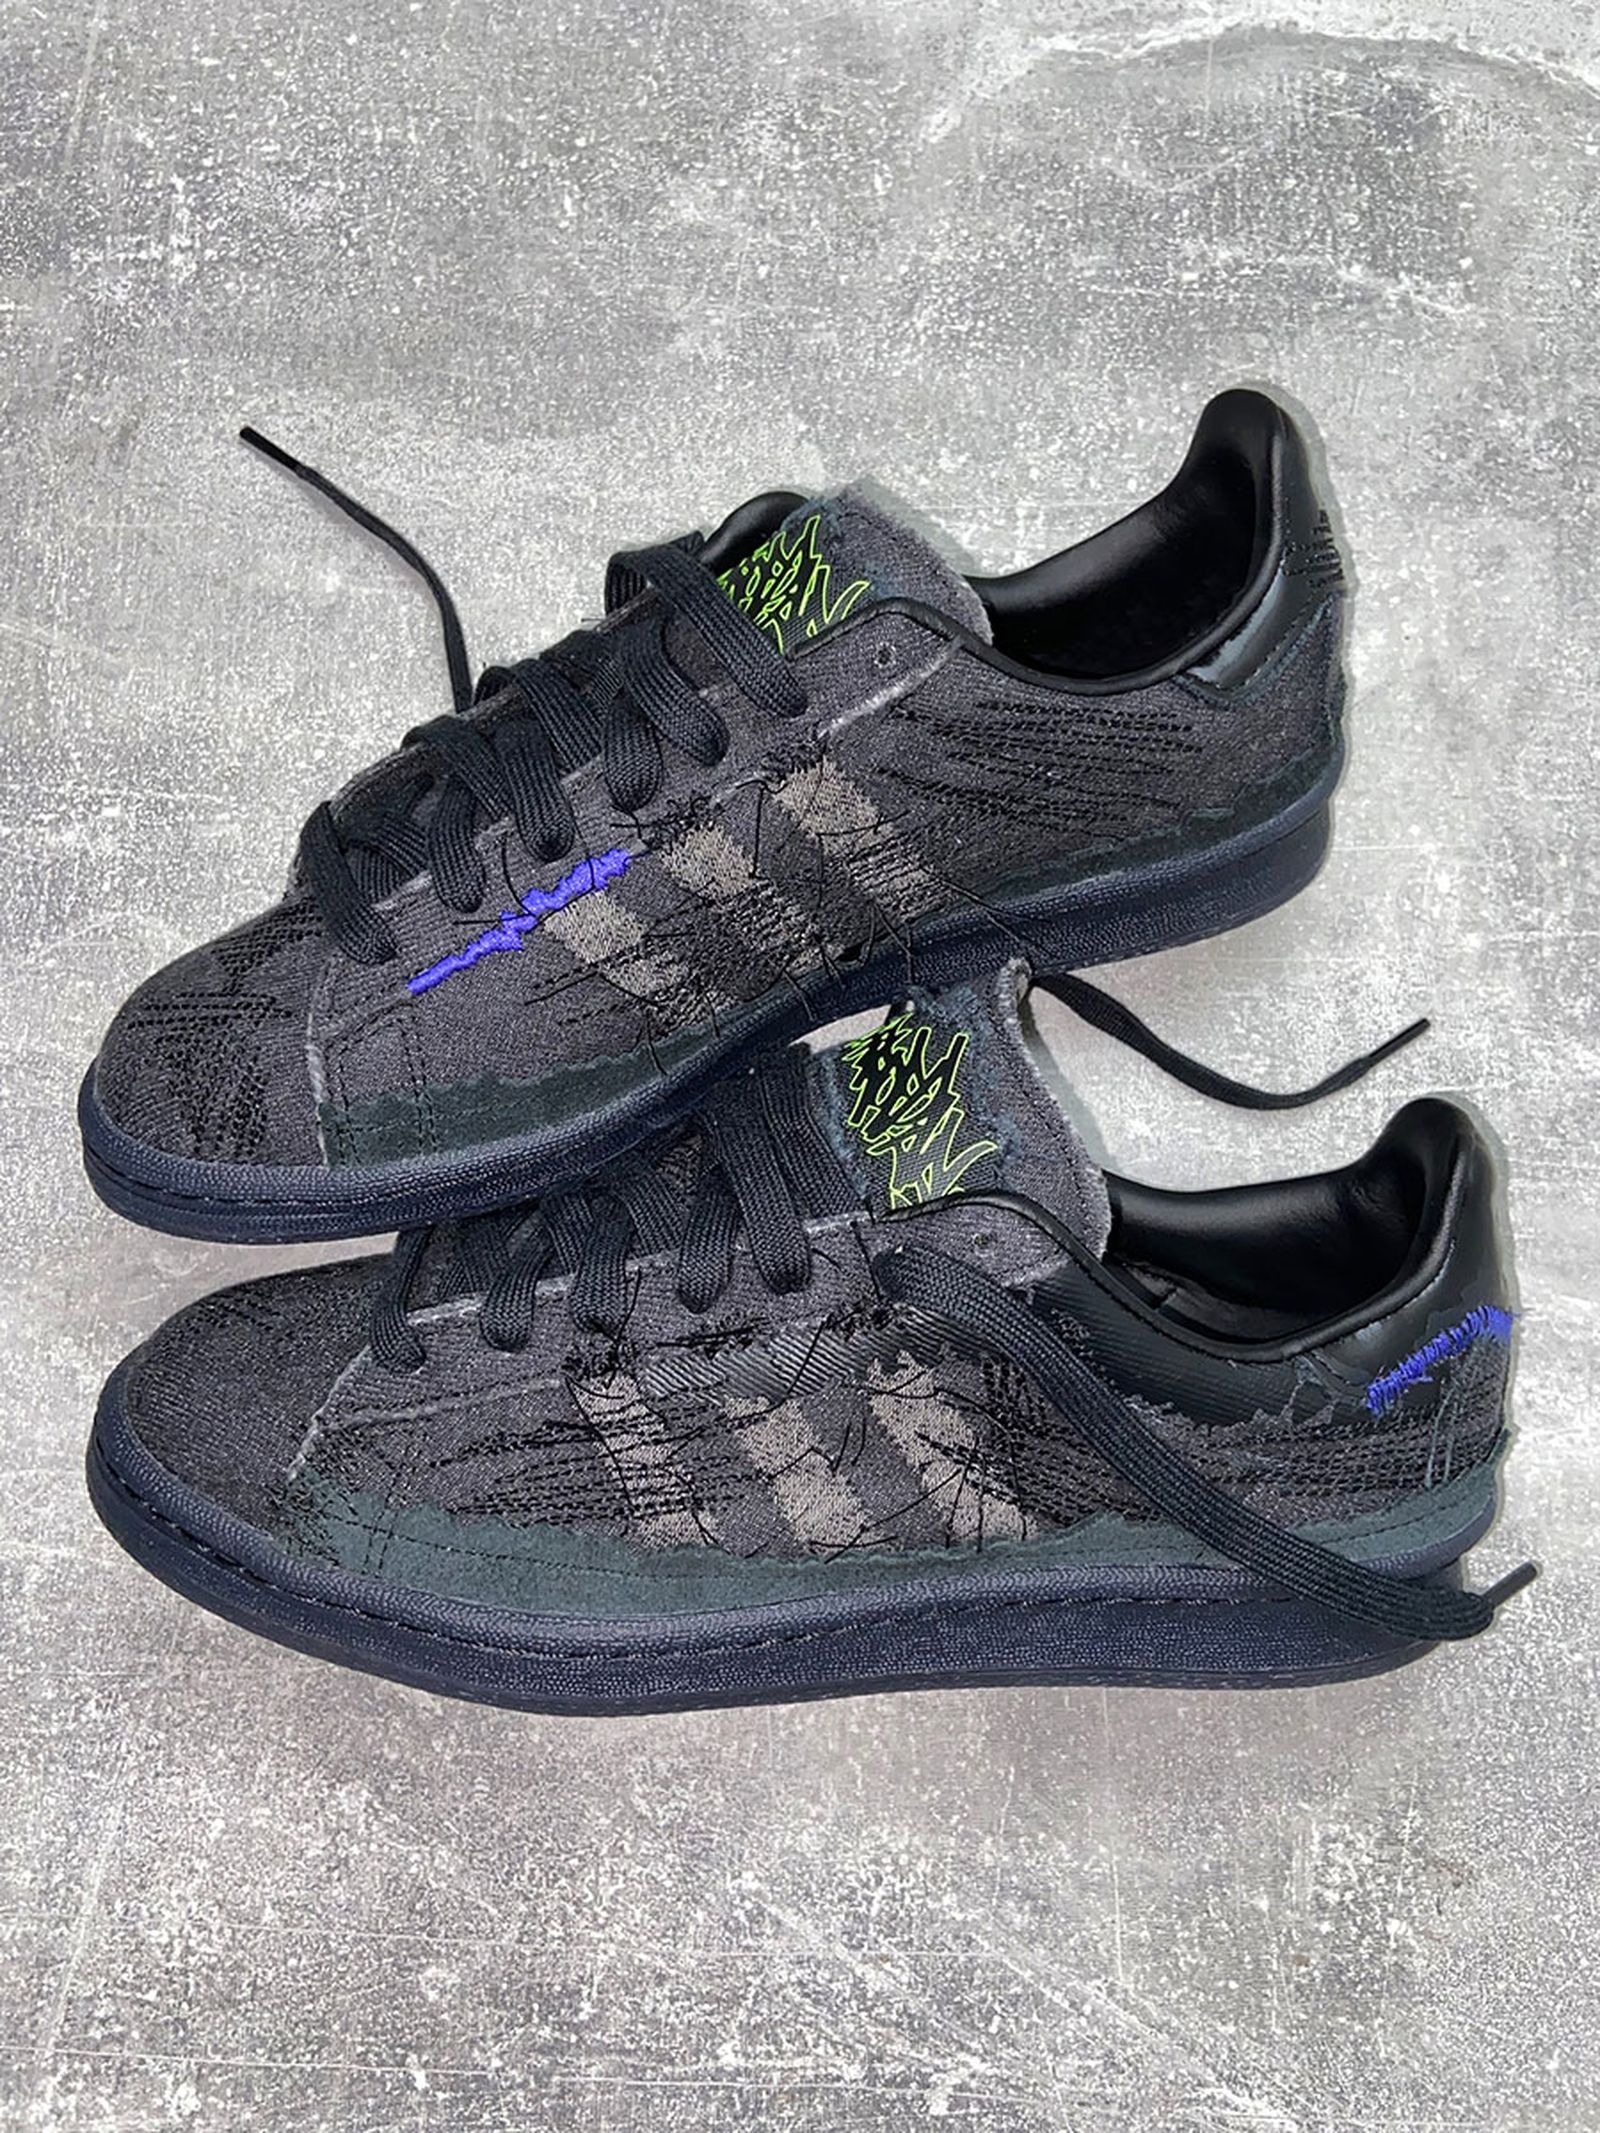 youth-of-paris-adidas-campus-80s-release-date-price-01